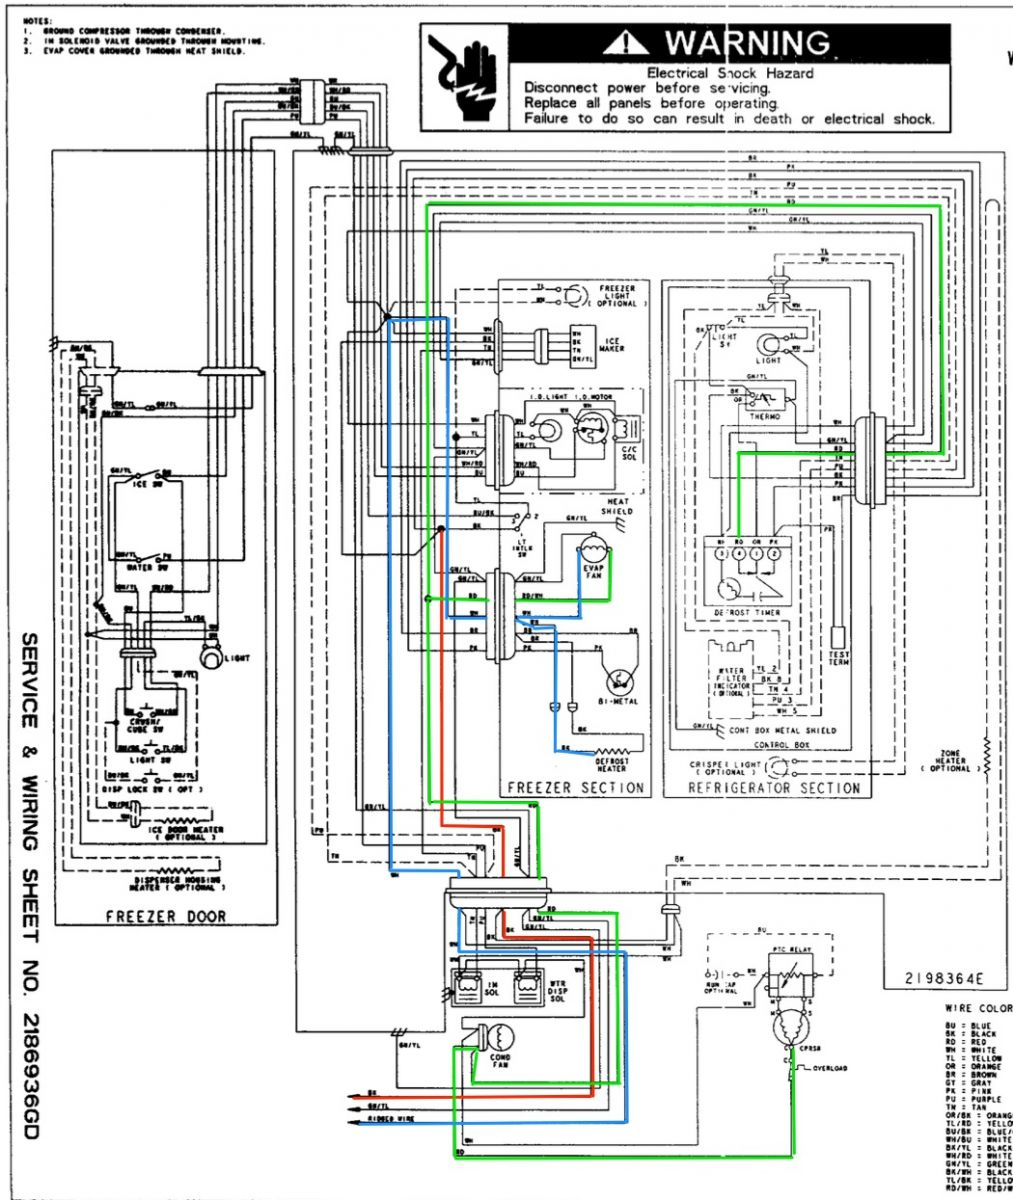 Model Wiring Diagram Opinions About Singer Heat Pump Schematic Repair Whirlpool Refrigerator Detailed Schematics Rh Lelandlutheran Com Knee Controller